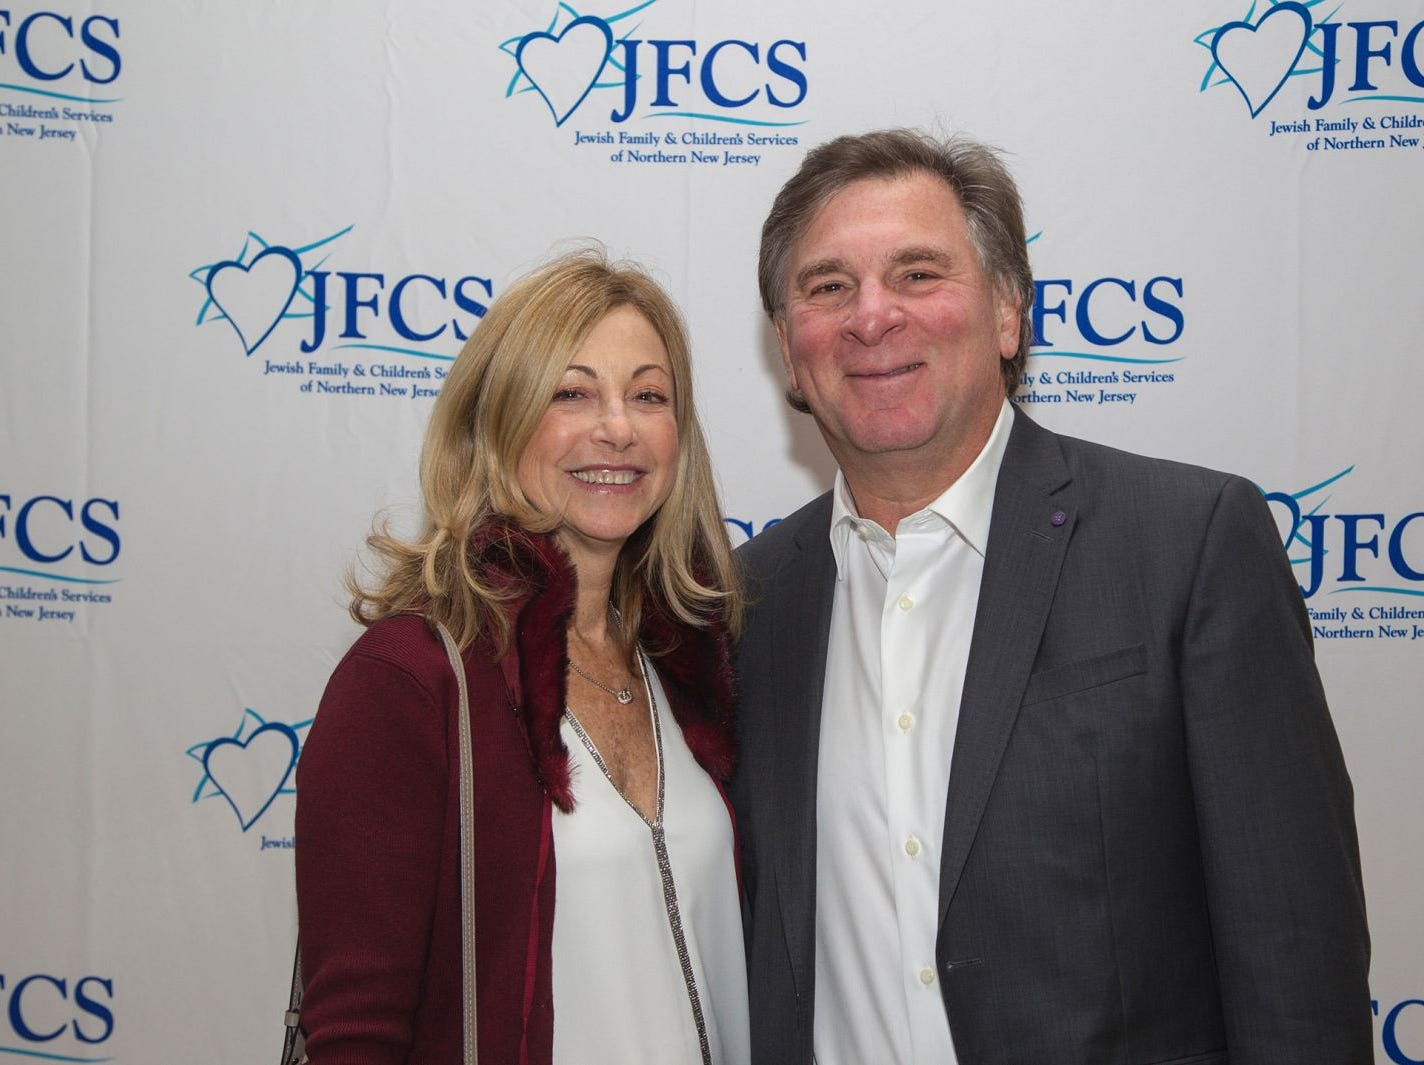 Debra Borden and David Nyman. Jewish Family & Children's Services of Northern New Jersey held its annual gala at the Edgewood Country Club in River Vale. The evening honored Shira Feuerstein, Jayne Petak, and Alan Scharfstein for their leadership, support, and dedication. 11/18/2018